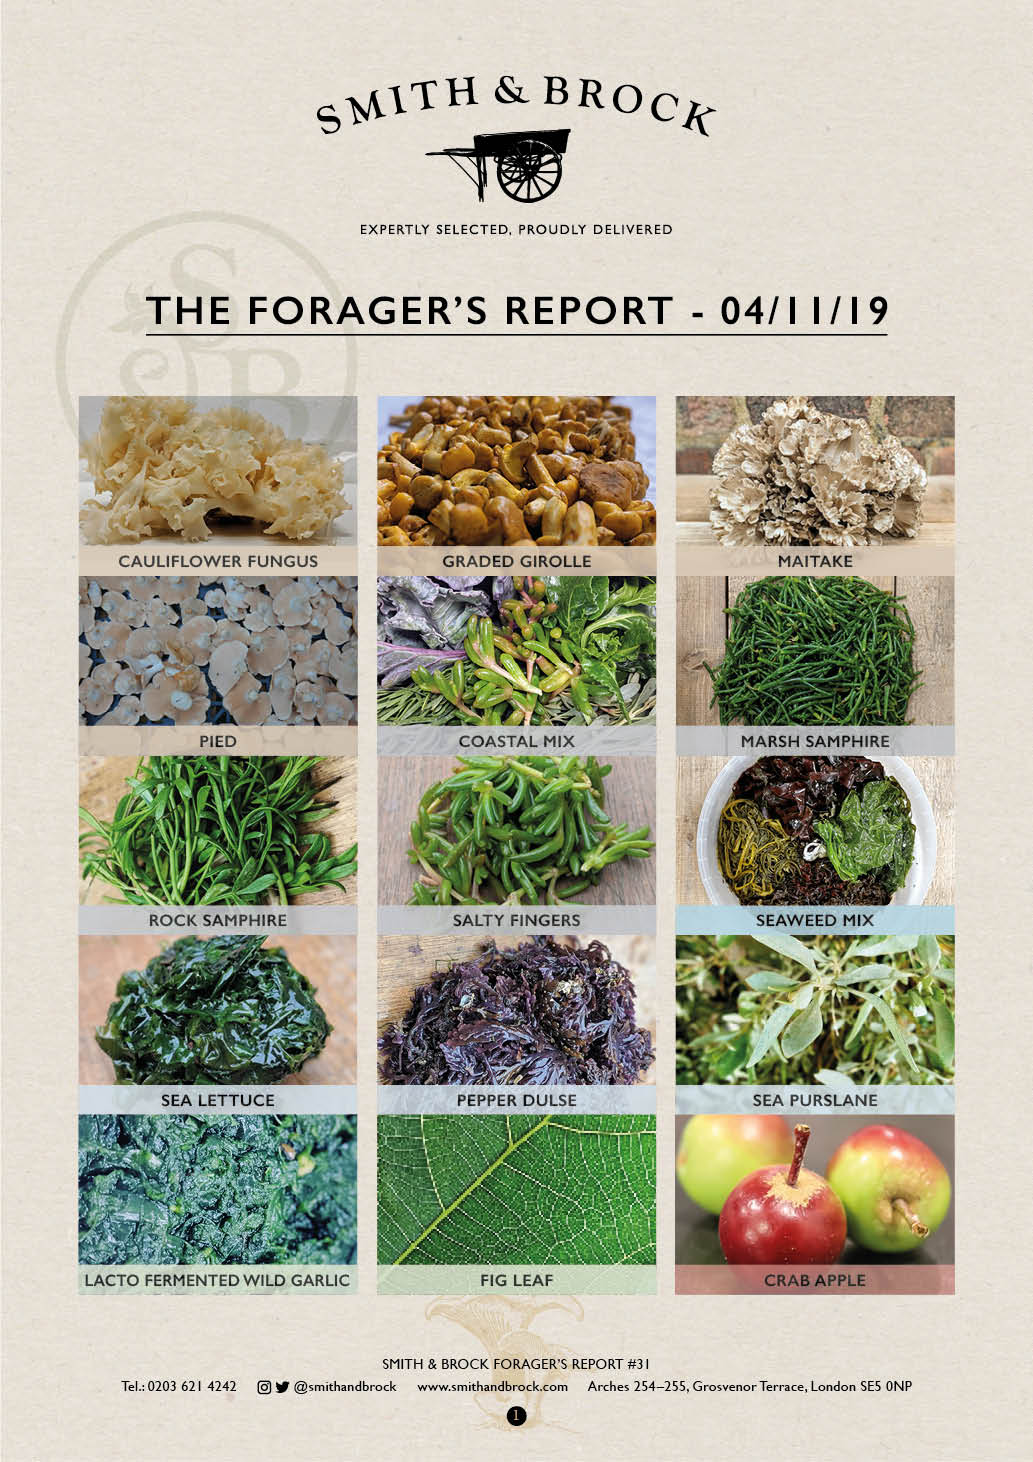 Smith&Brock Foraged Products Report 04 Nov 2019 31